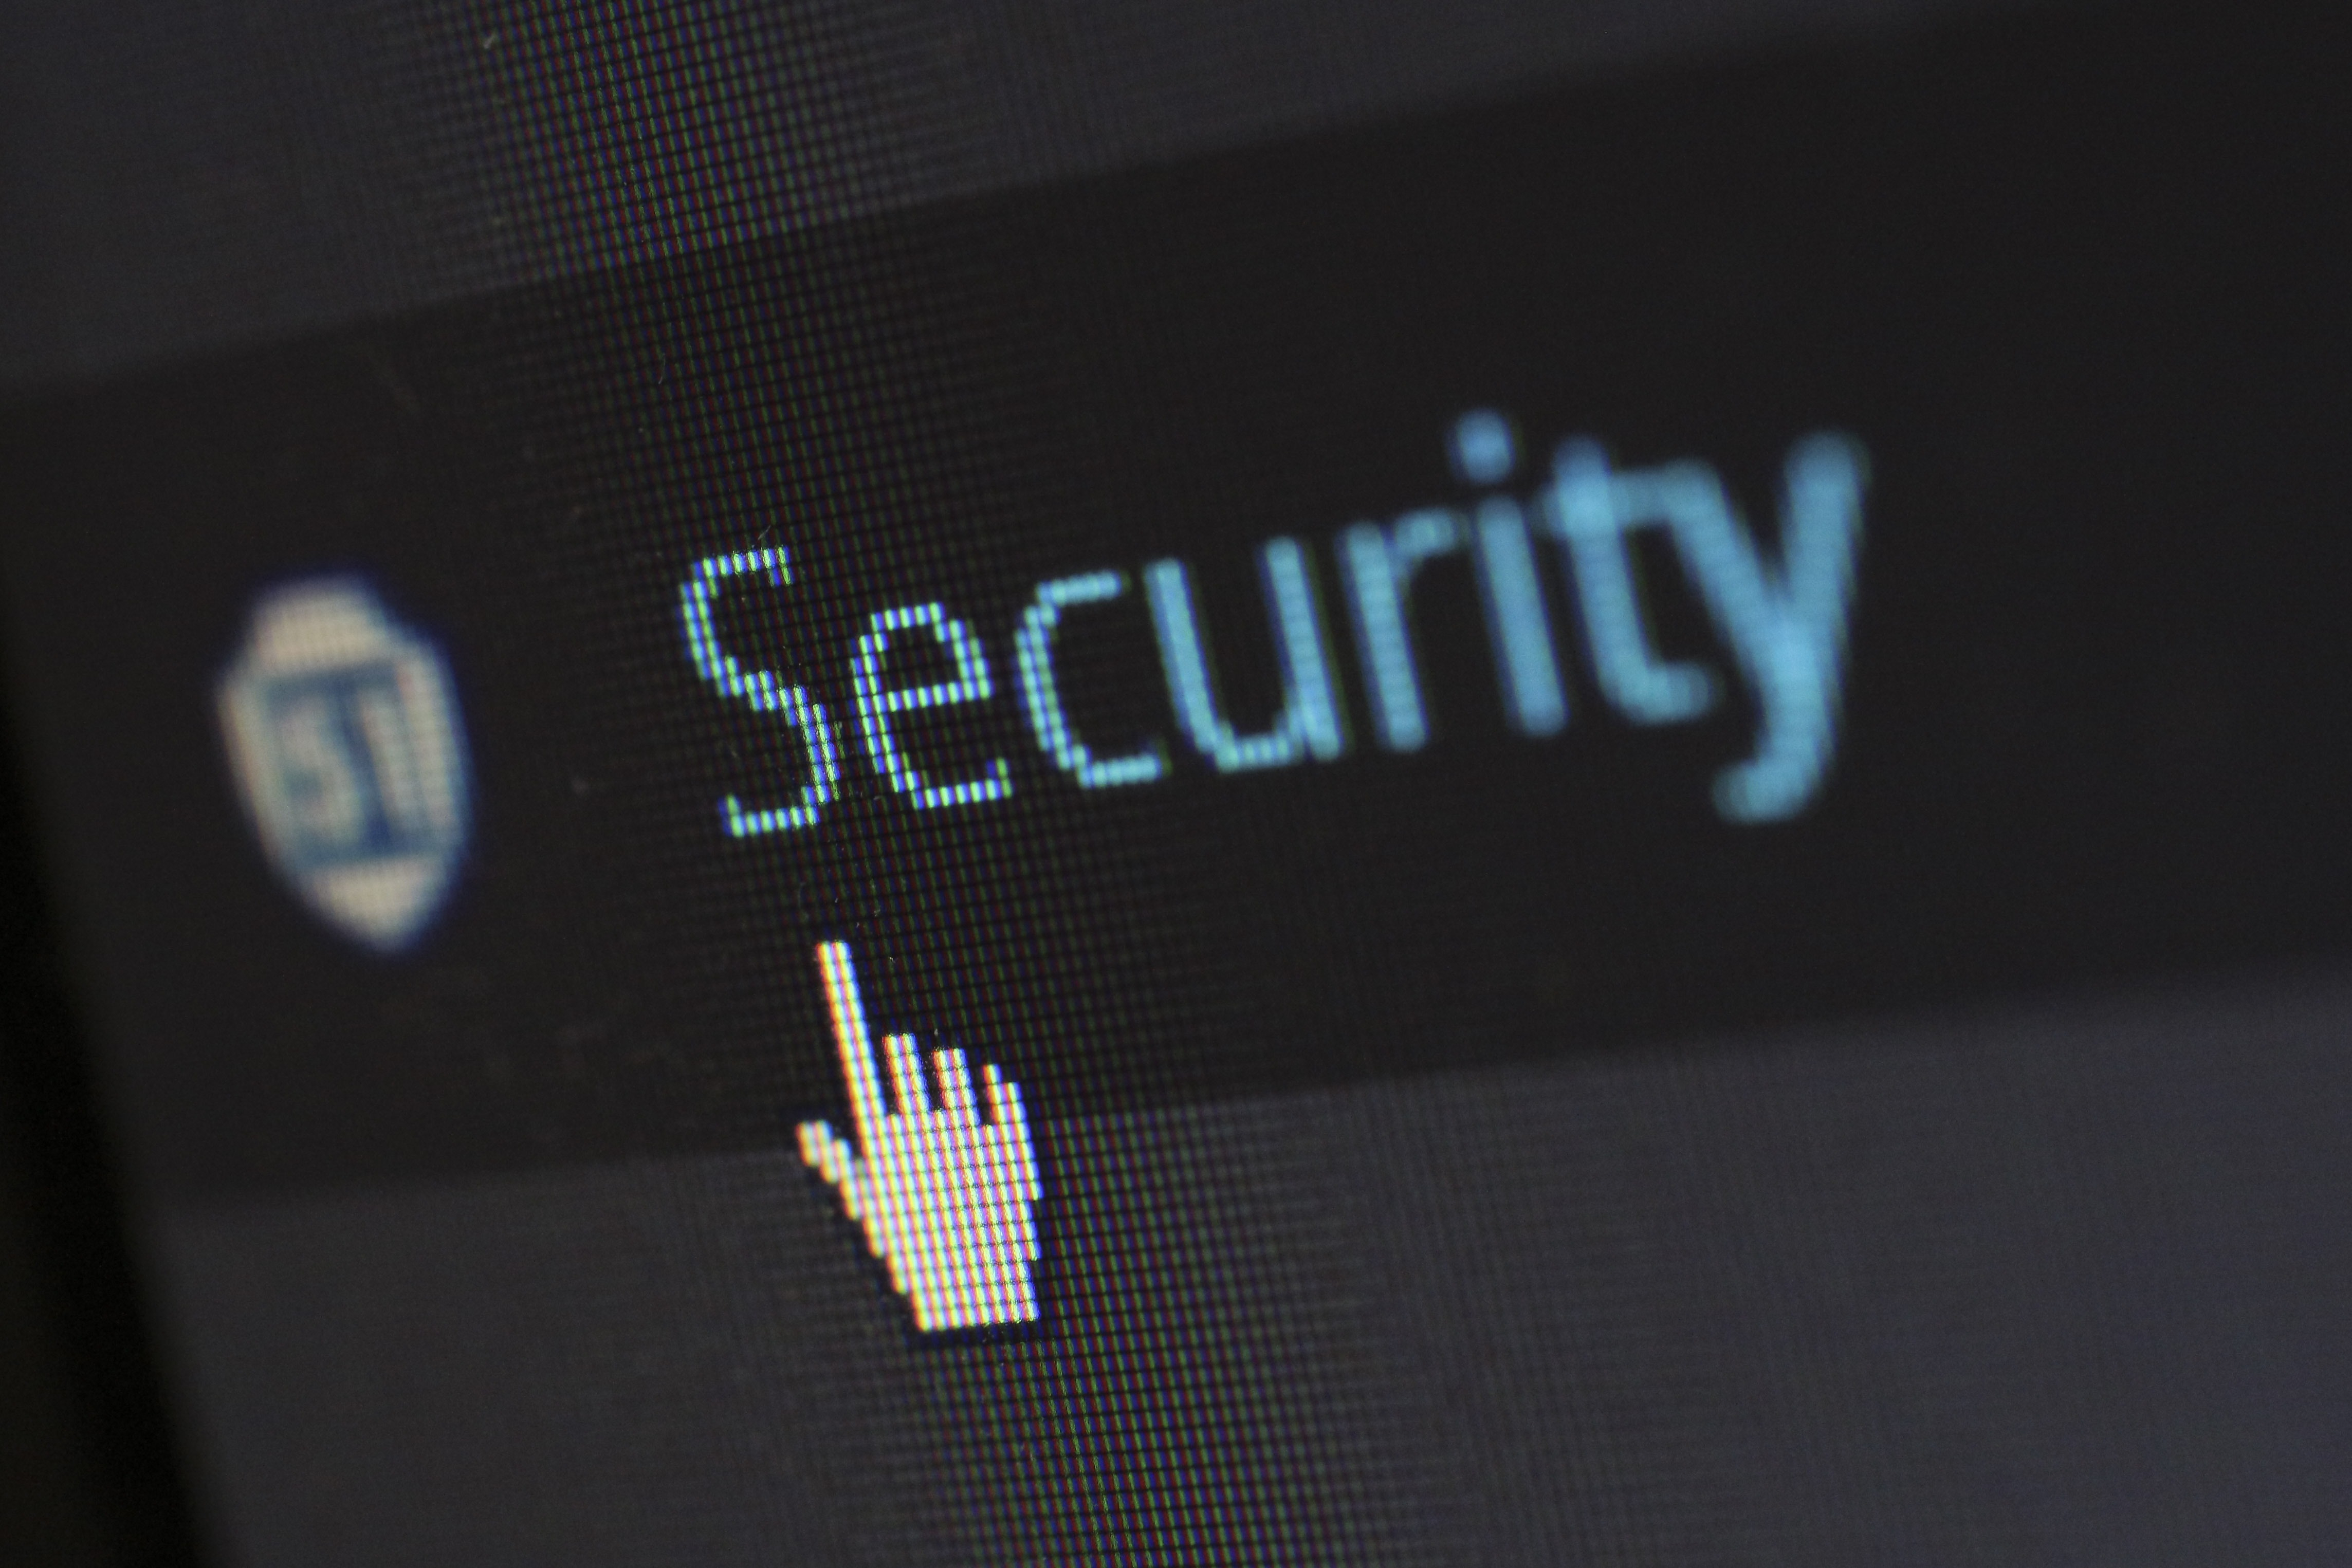 Security systems and anti-theft devices